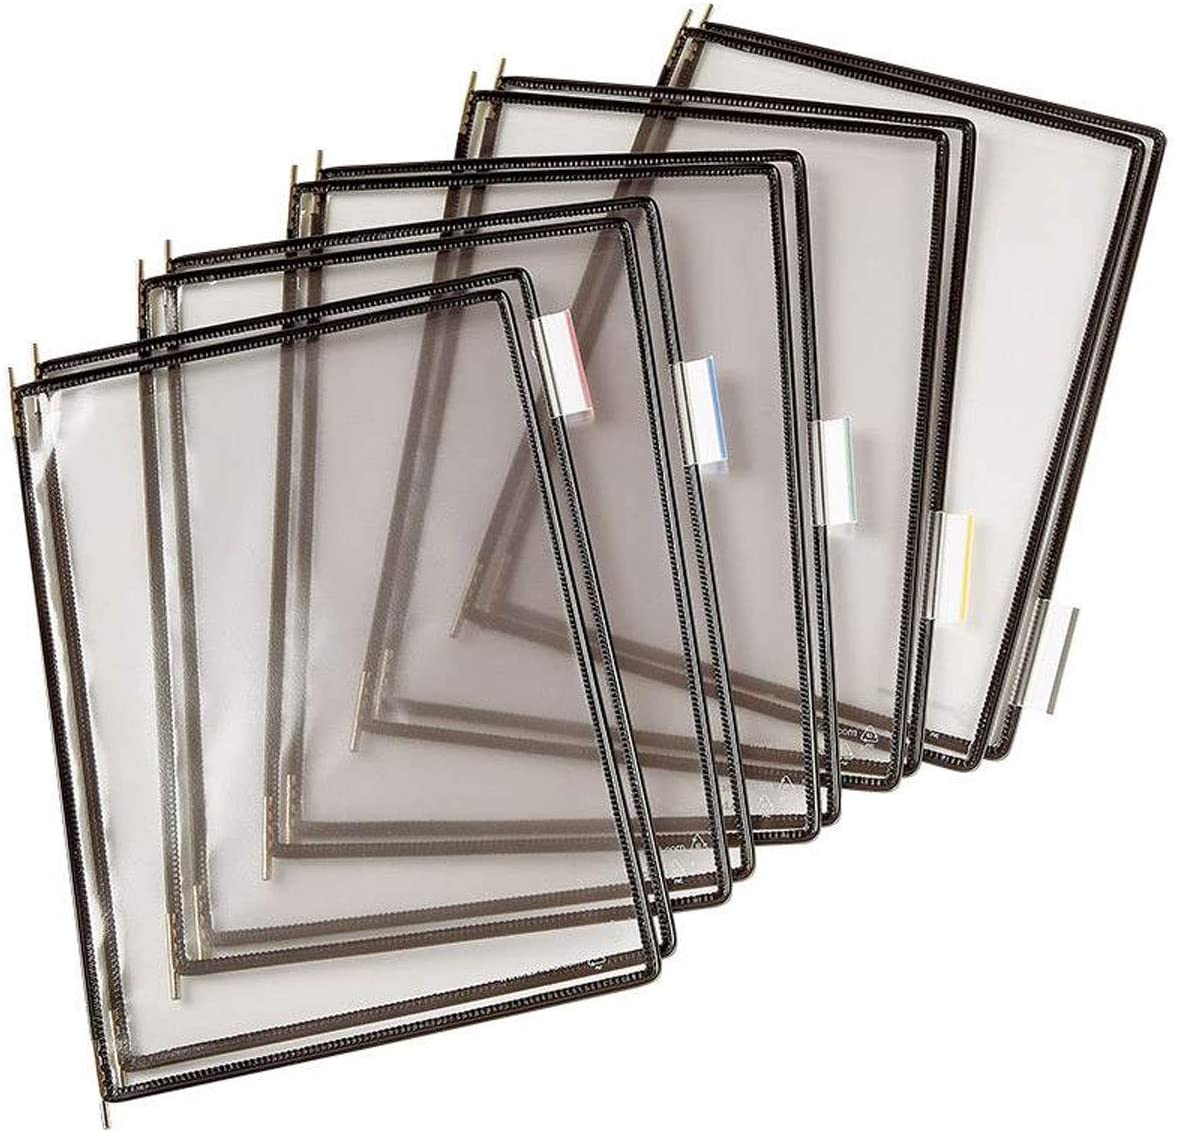 TARIFOLD Pivoting Pockets for Wall Desk or Rotary Systems Black-Framed 10/Pack (PO70)